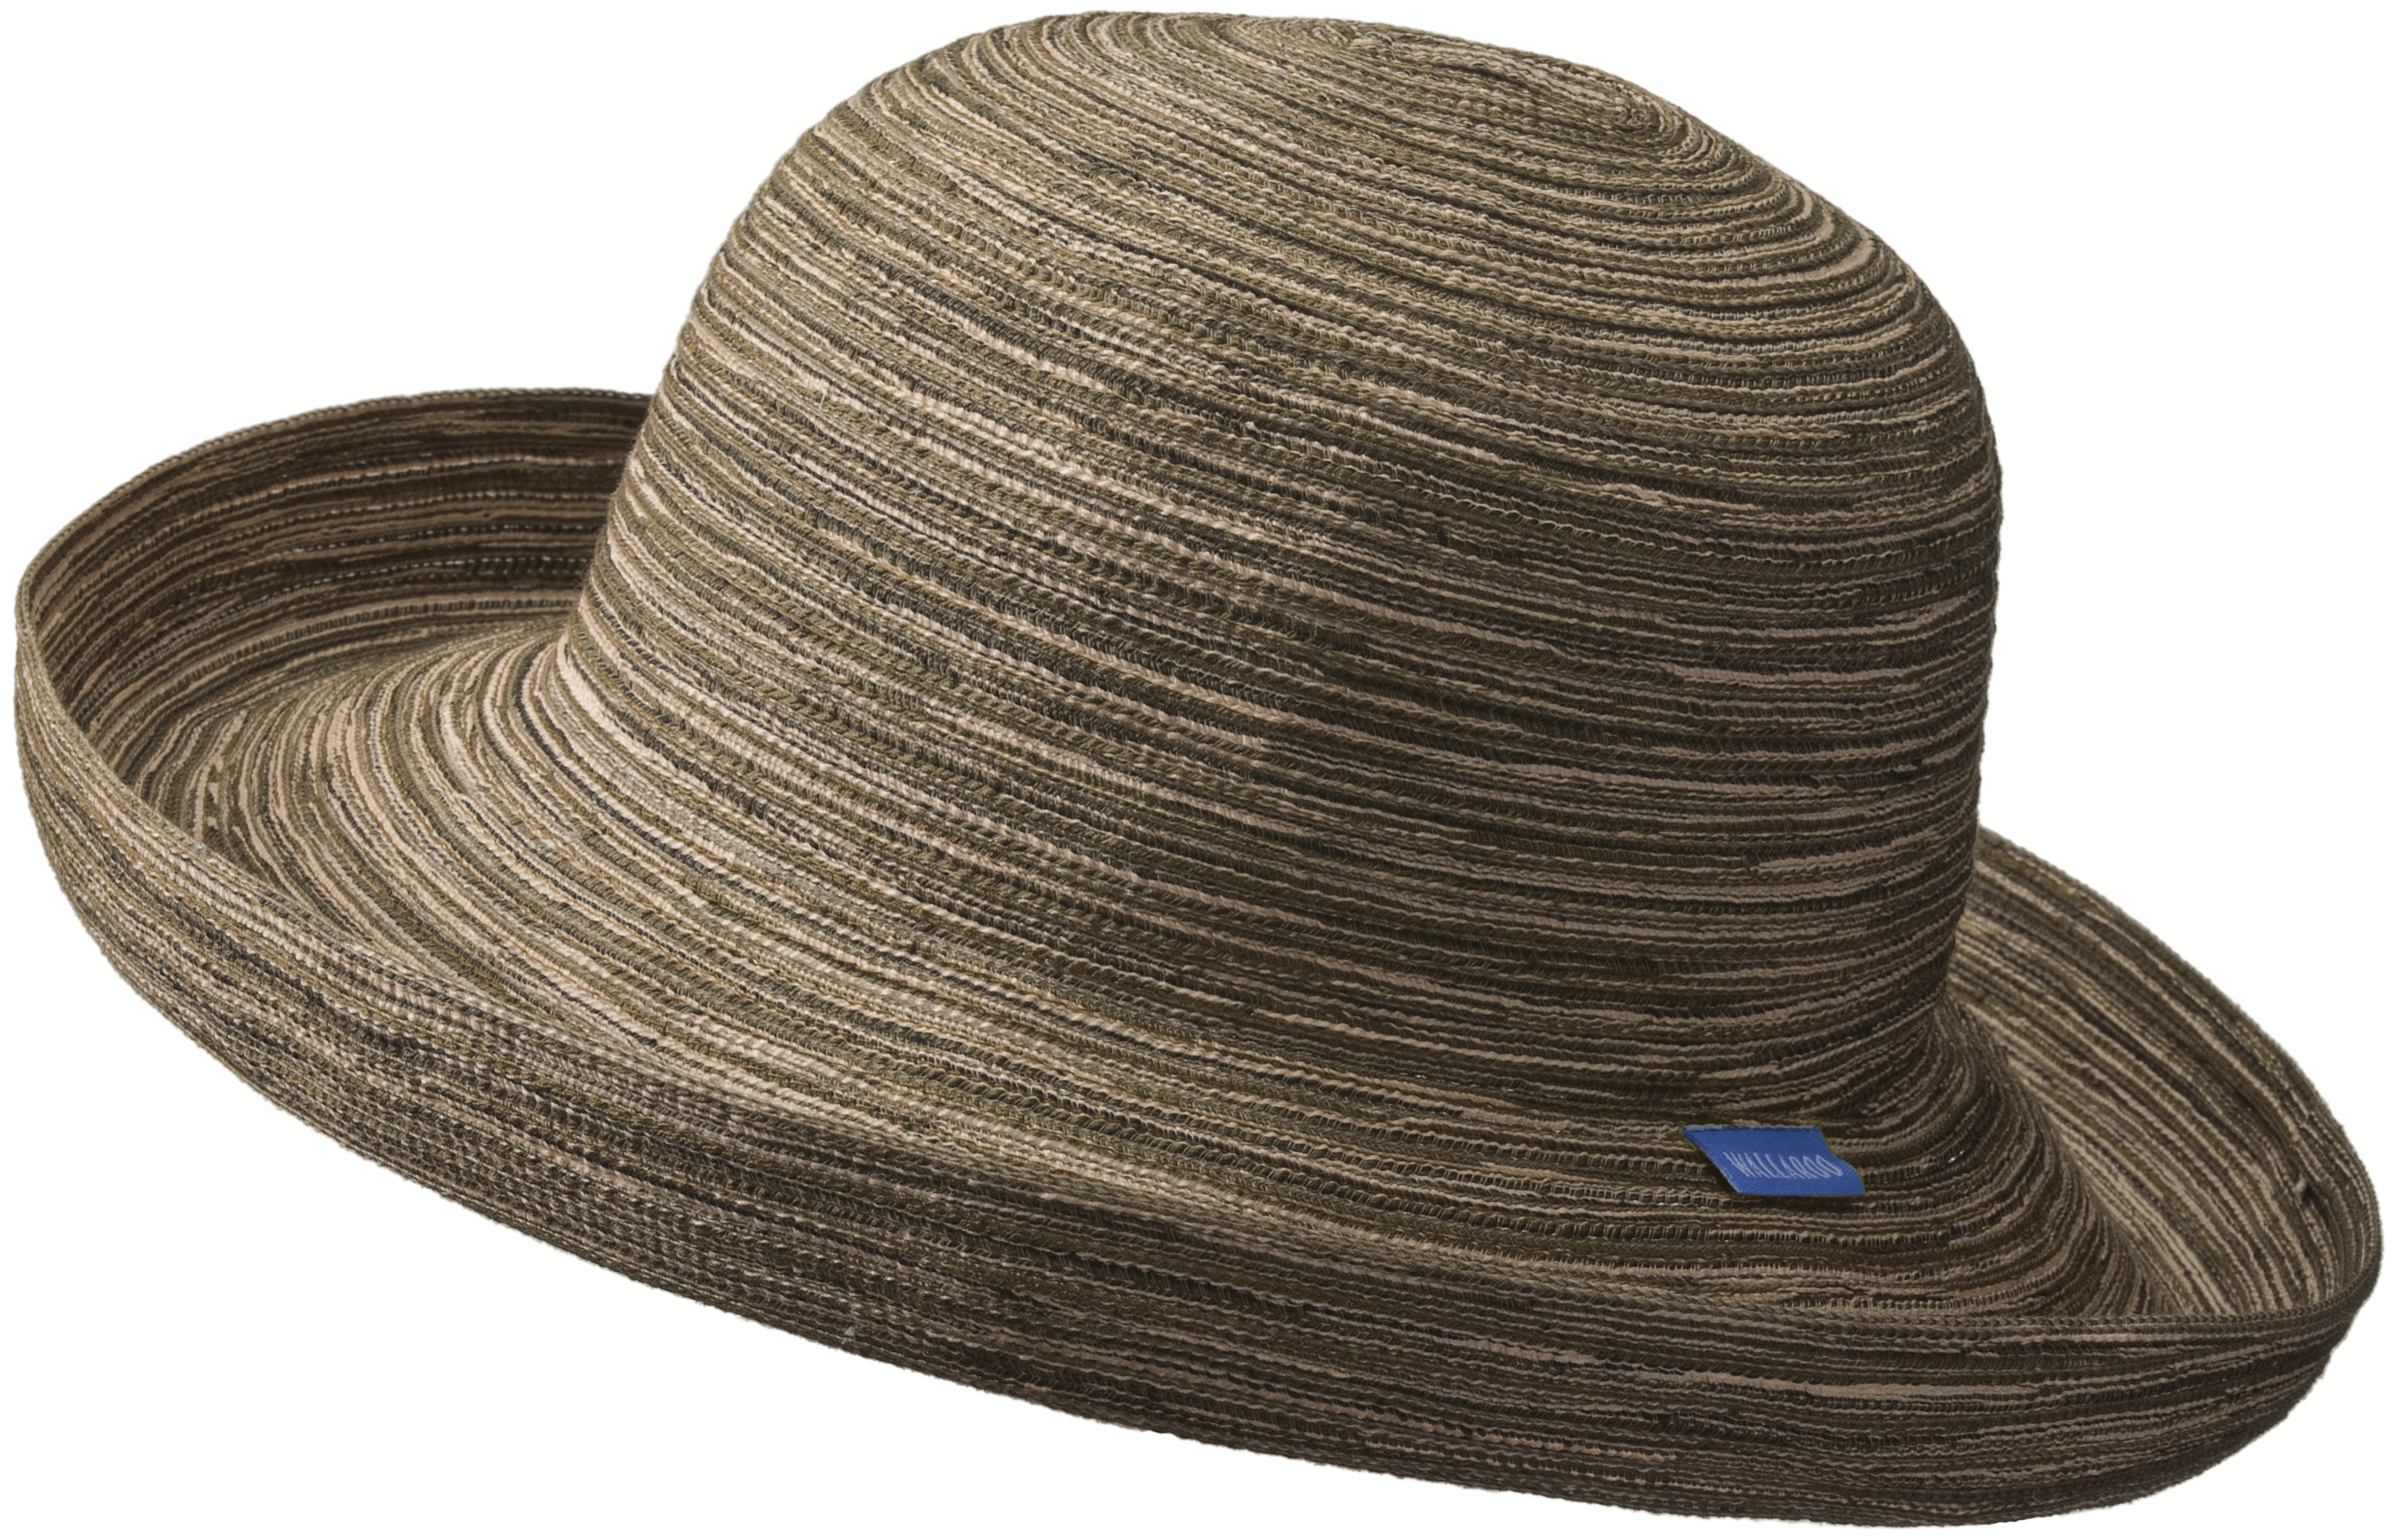 acacb125db3 Women s Sun hats